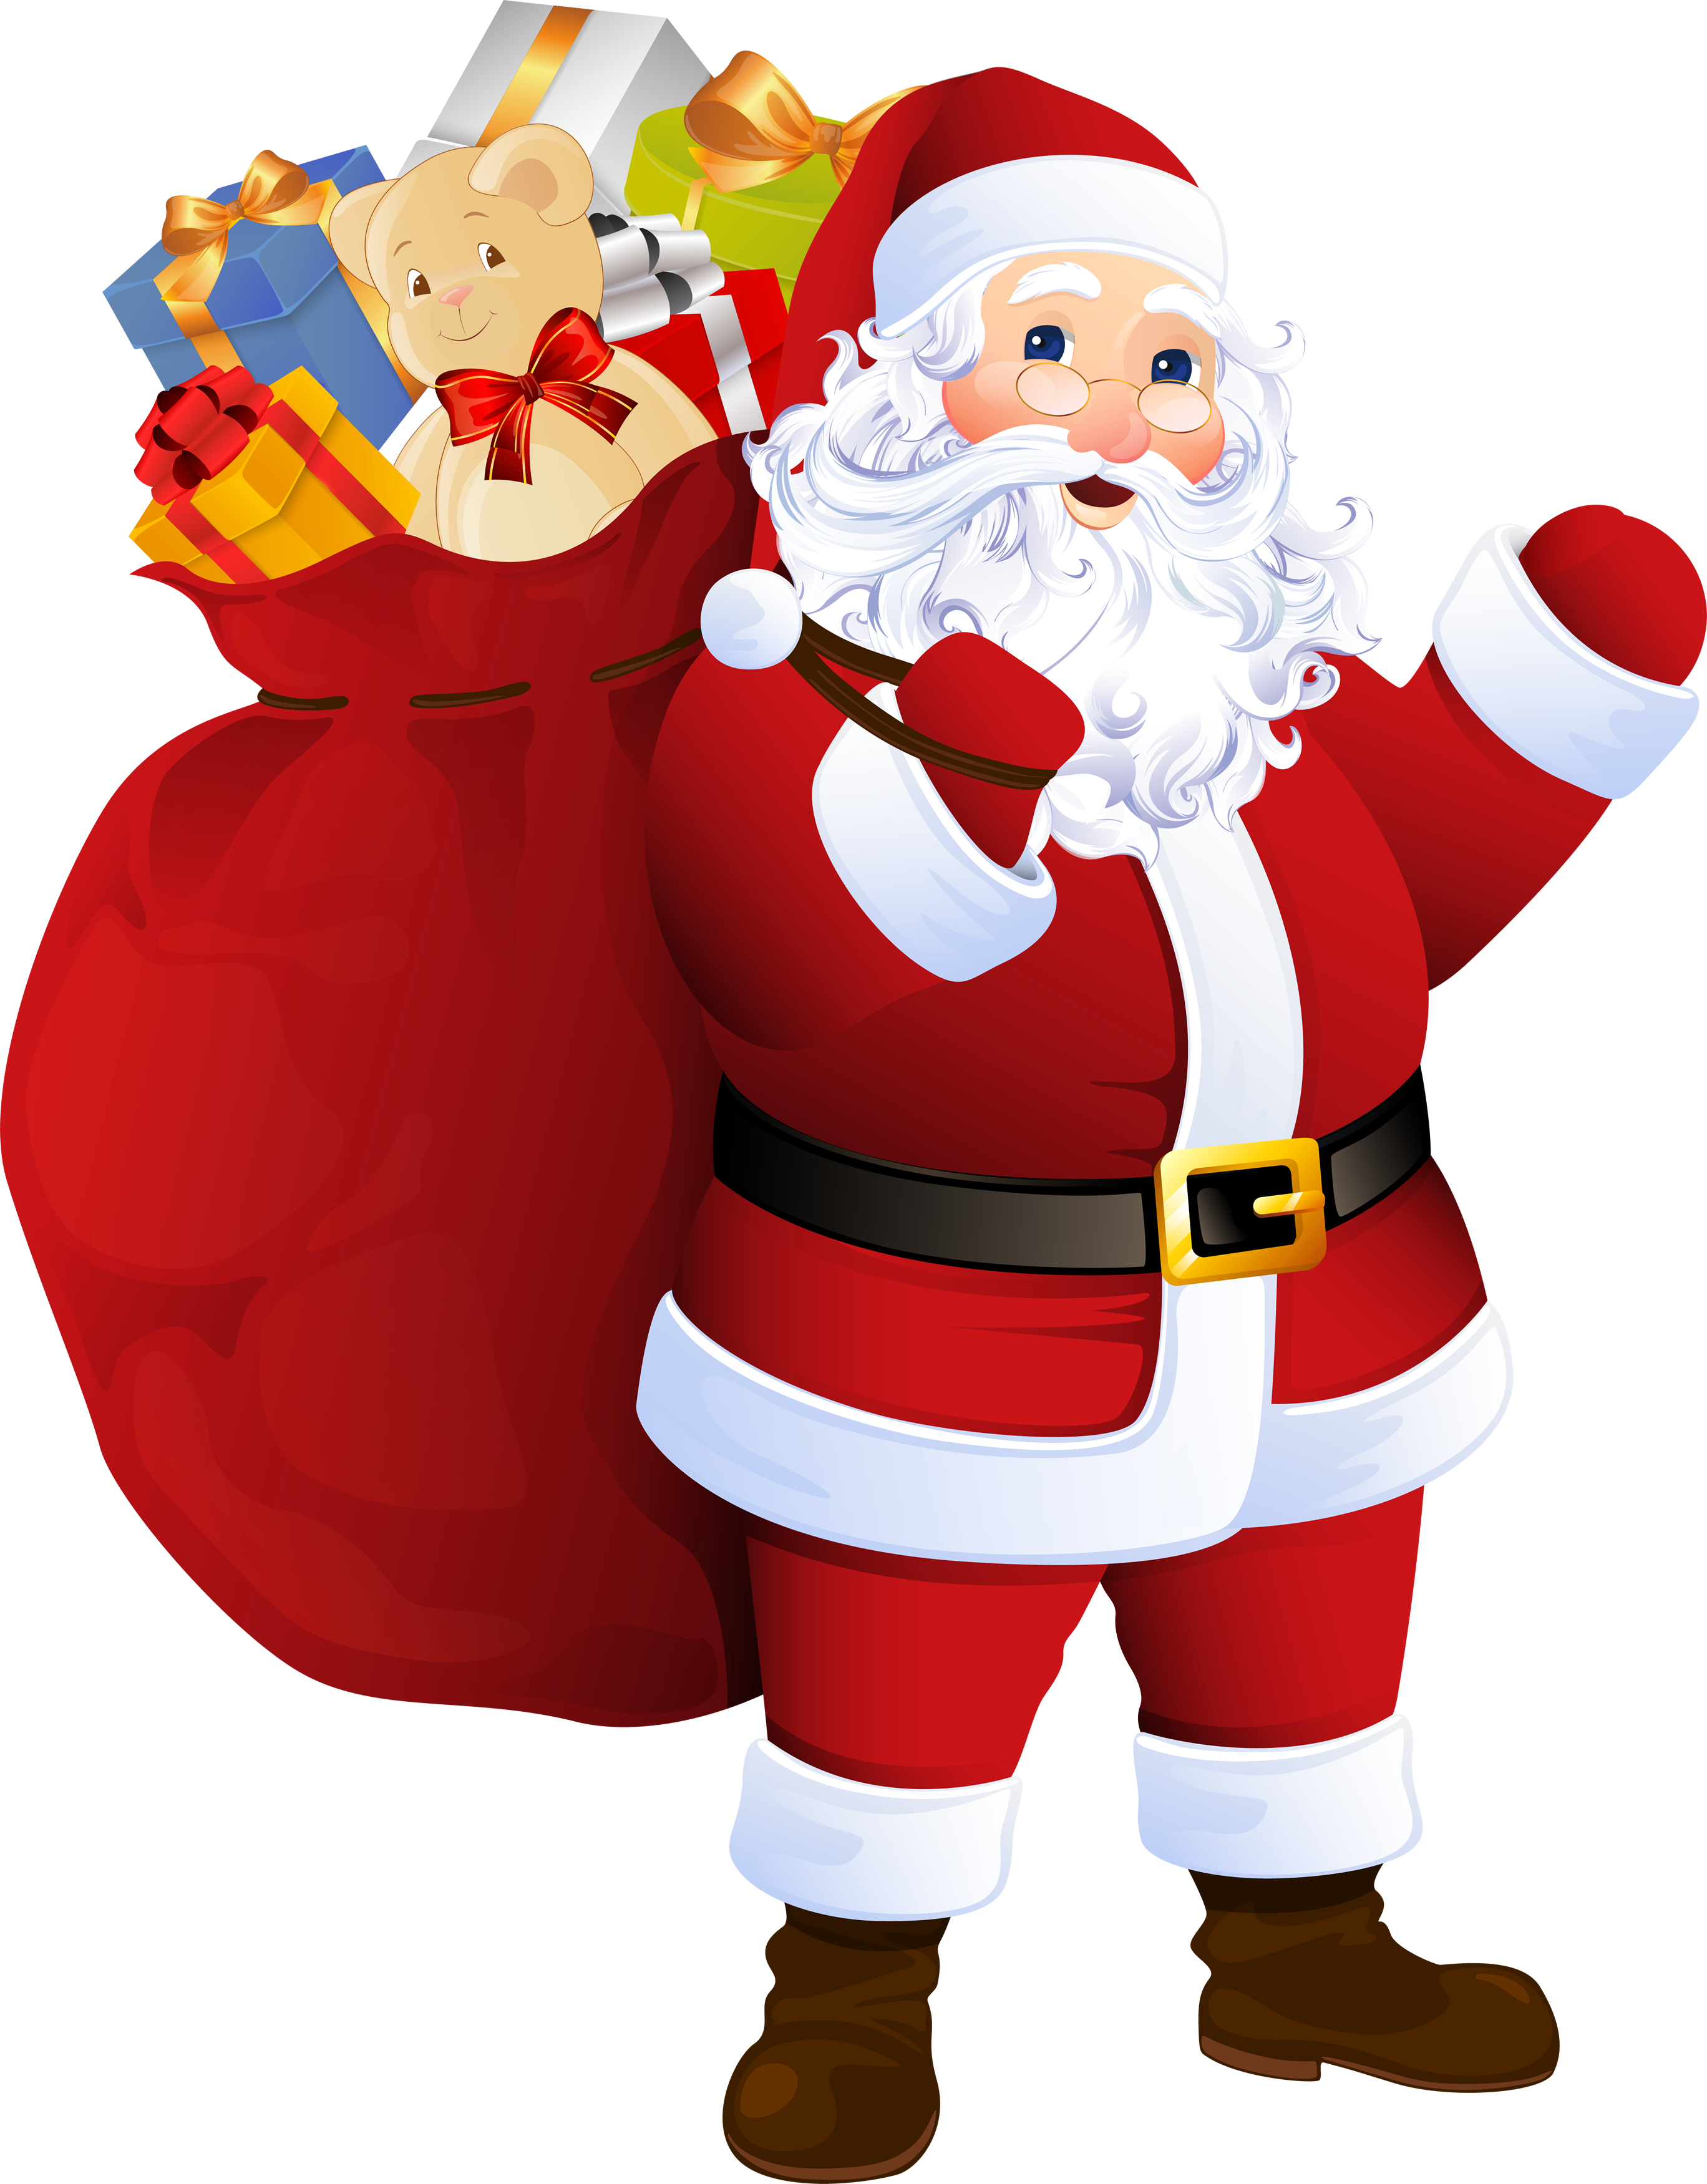 Santa Claus Download Png Clipart image #34015